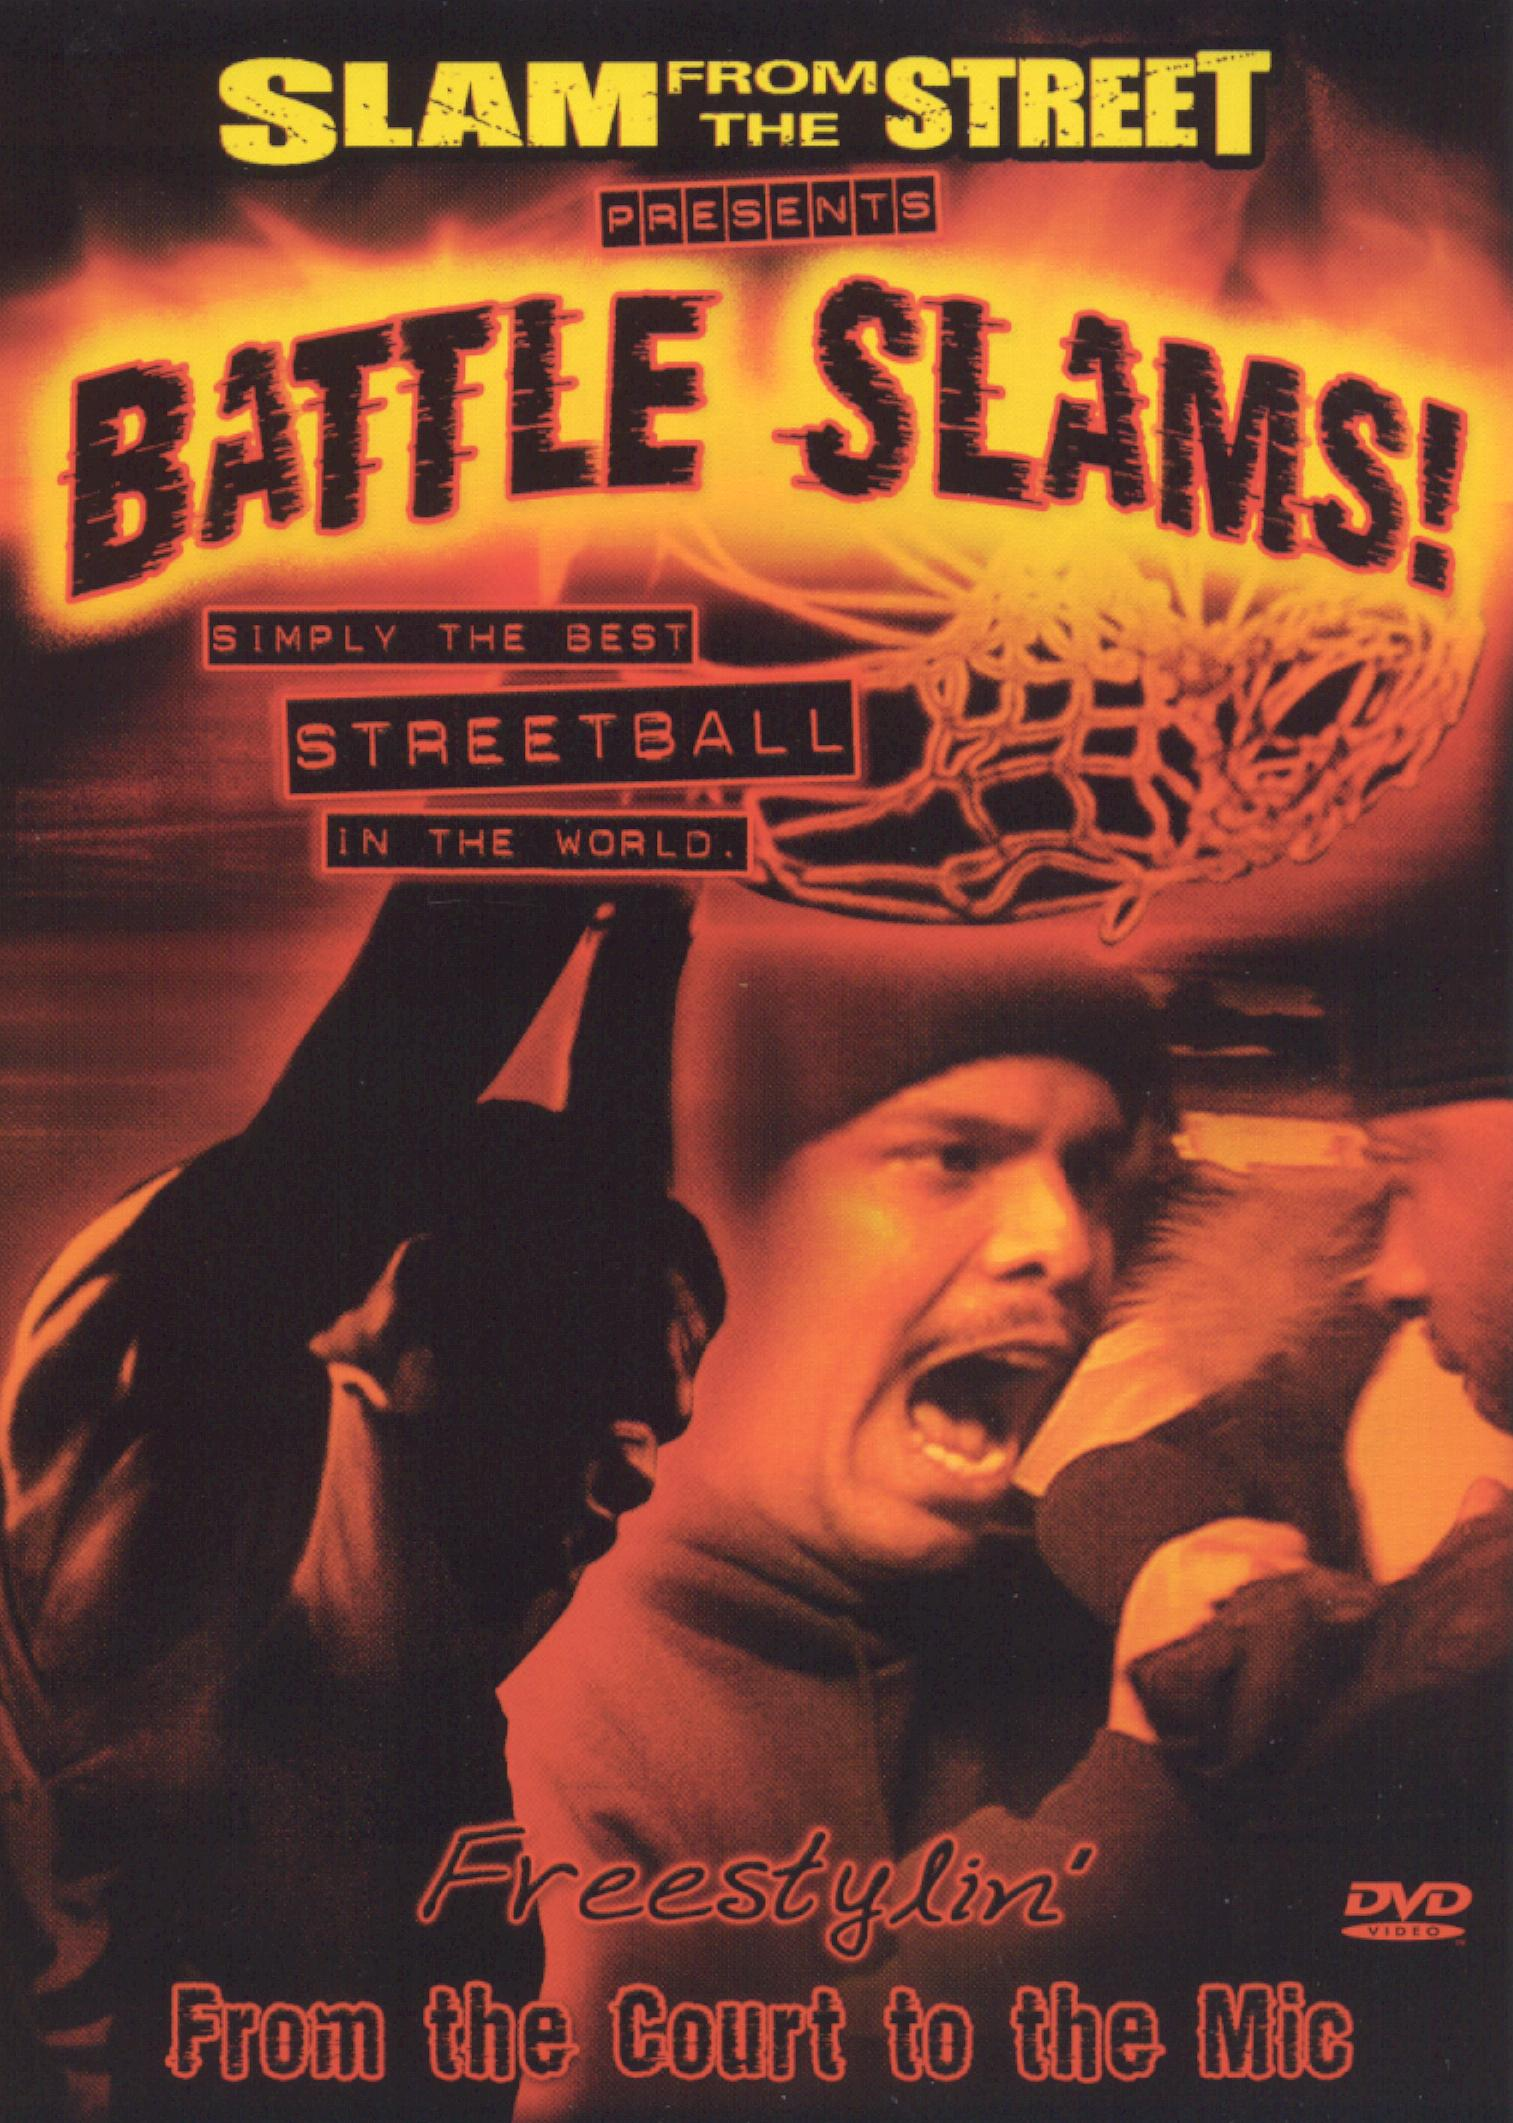 Slam From the Street: Battle Slams!